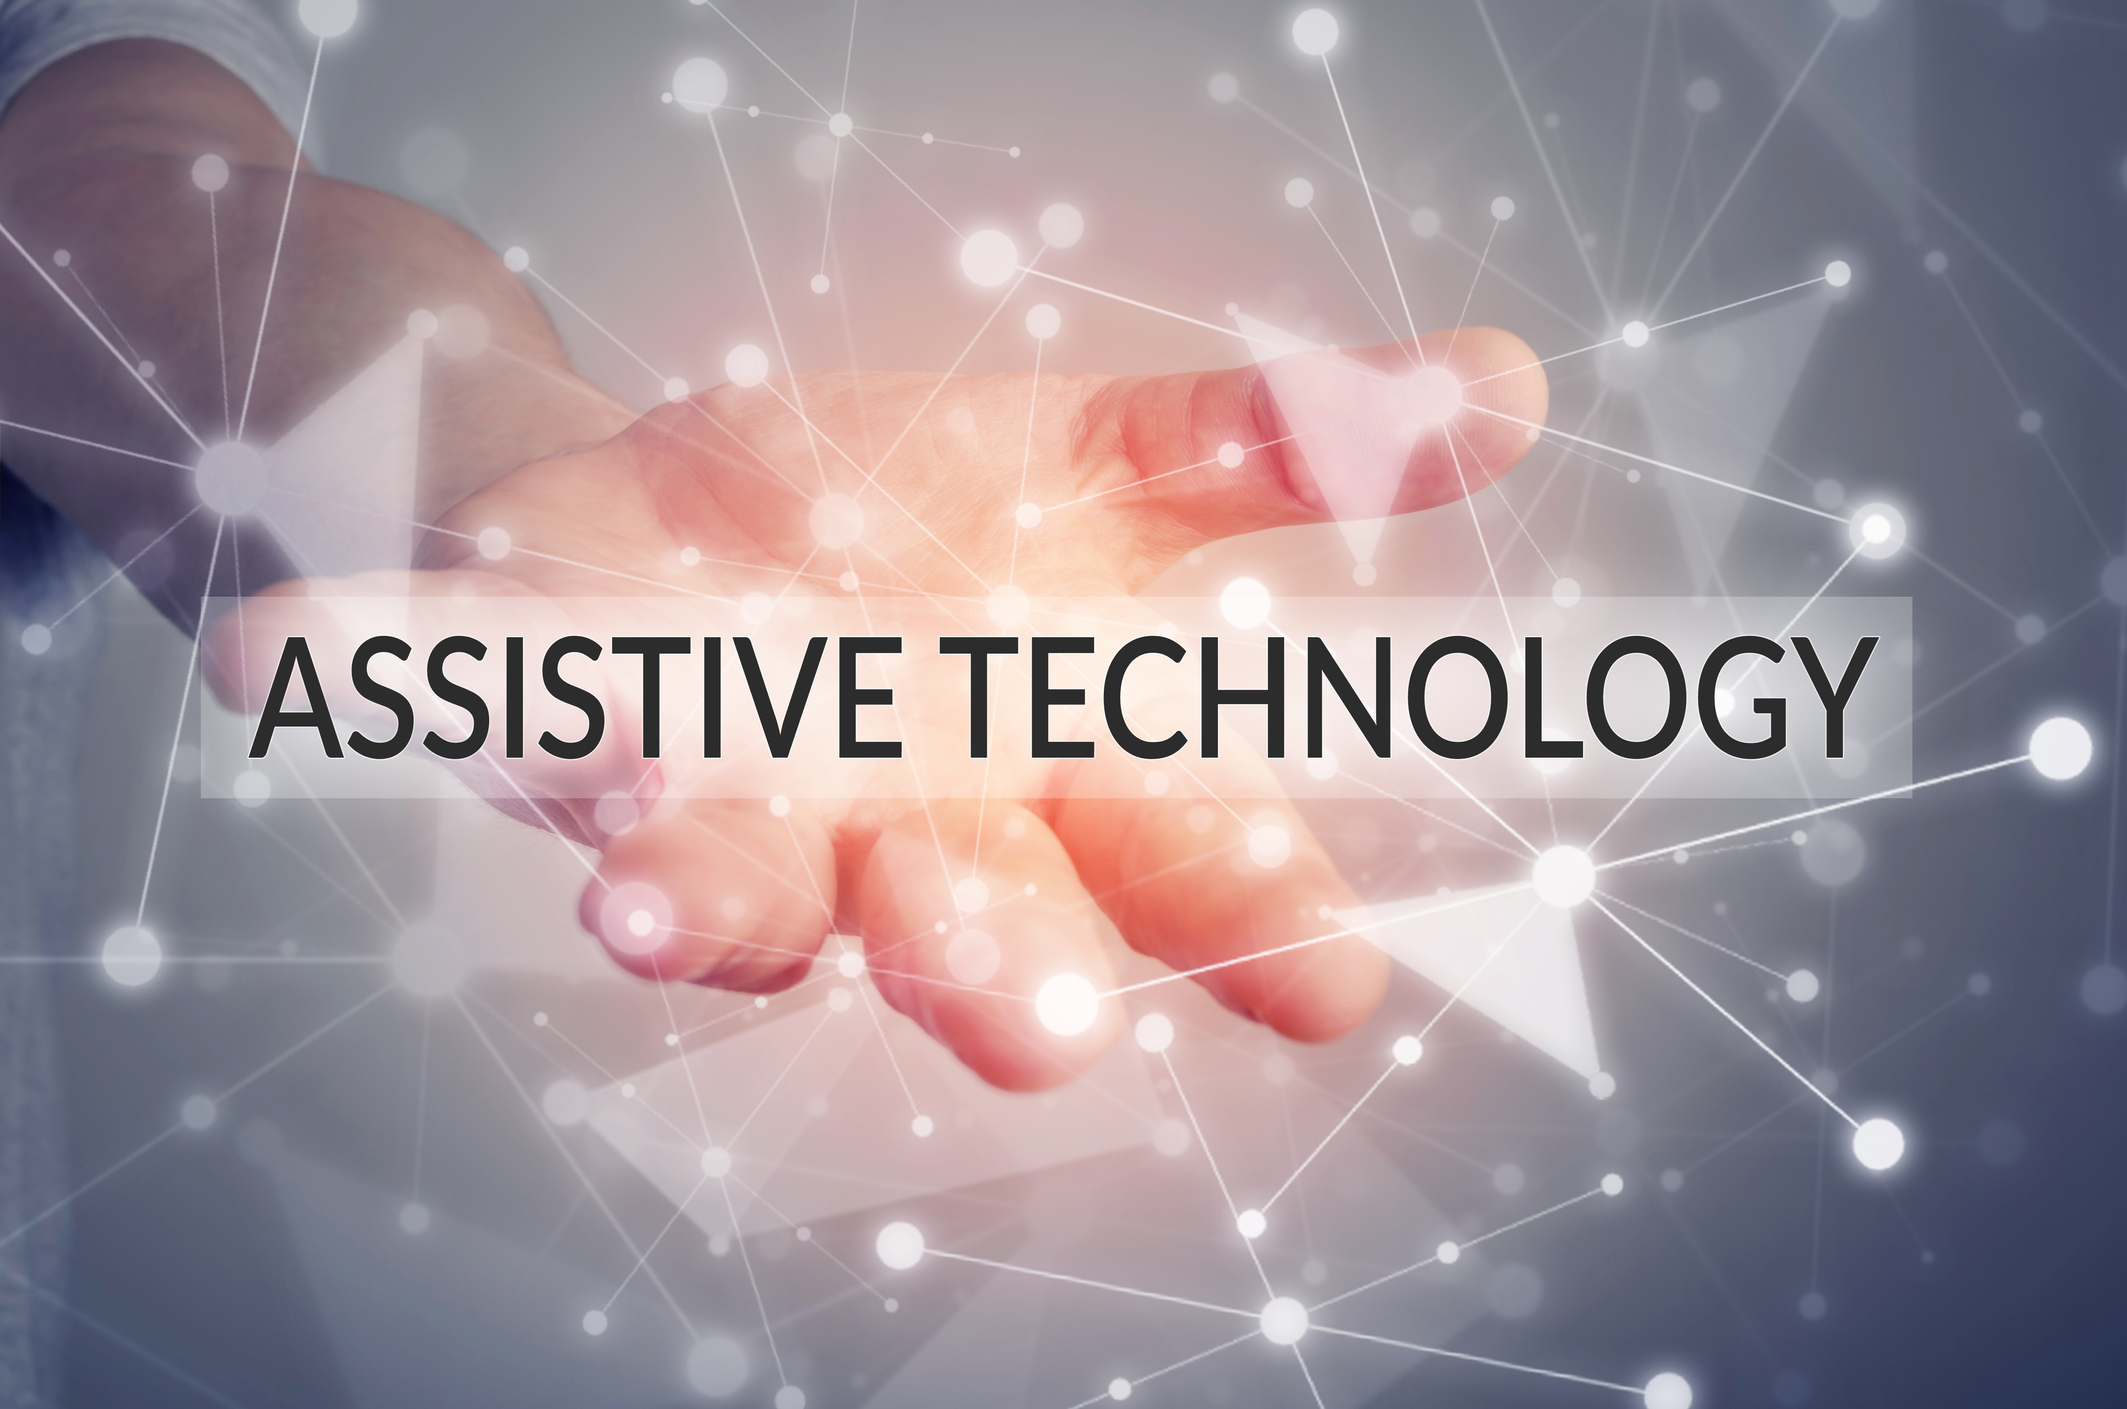 Assistive Technology has advanced dramatically from 1938